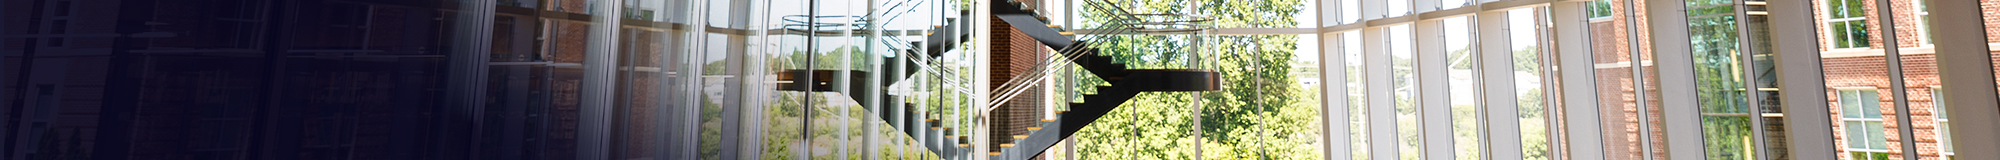 Photo of hanging stairs